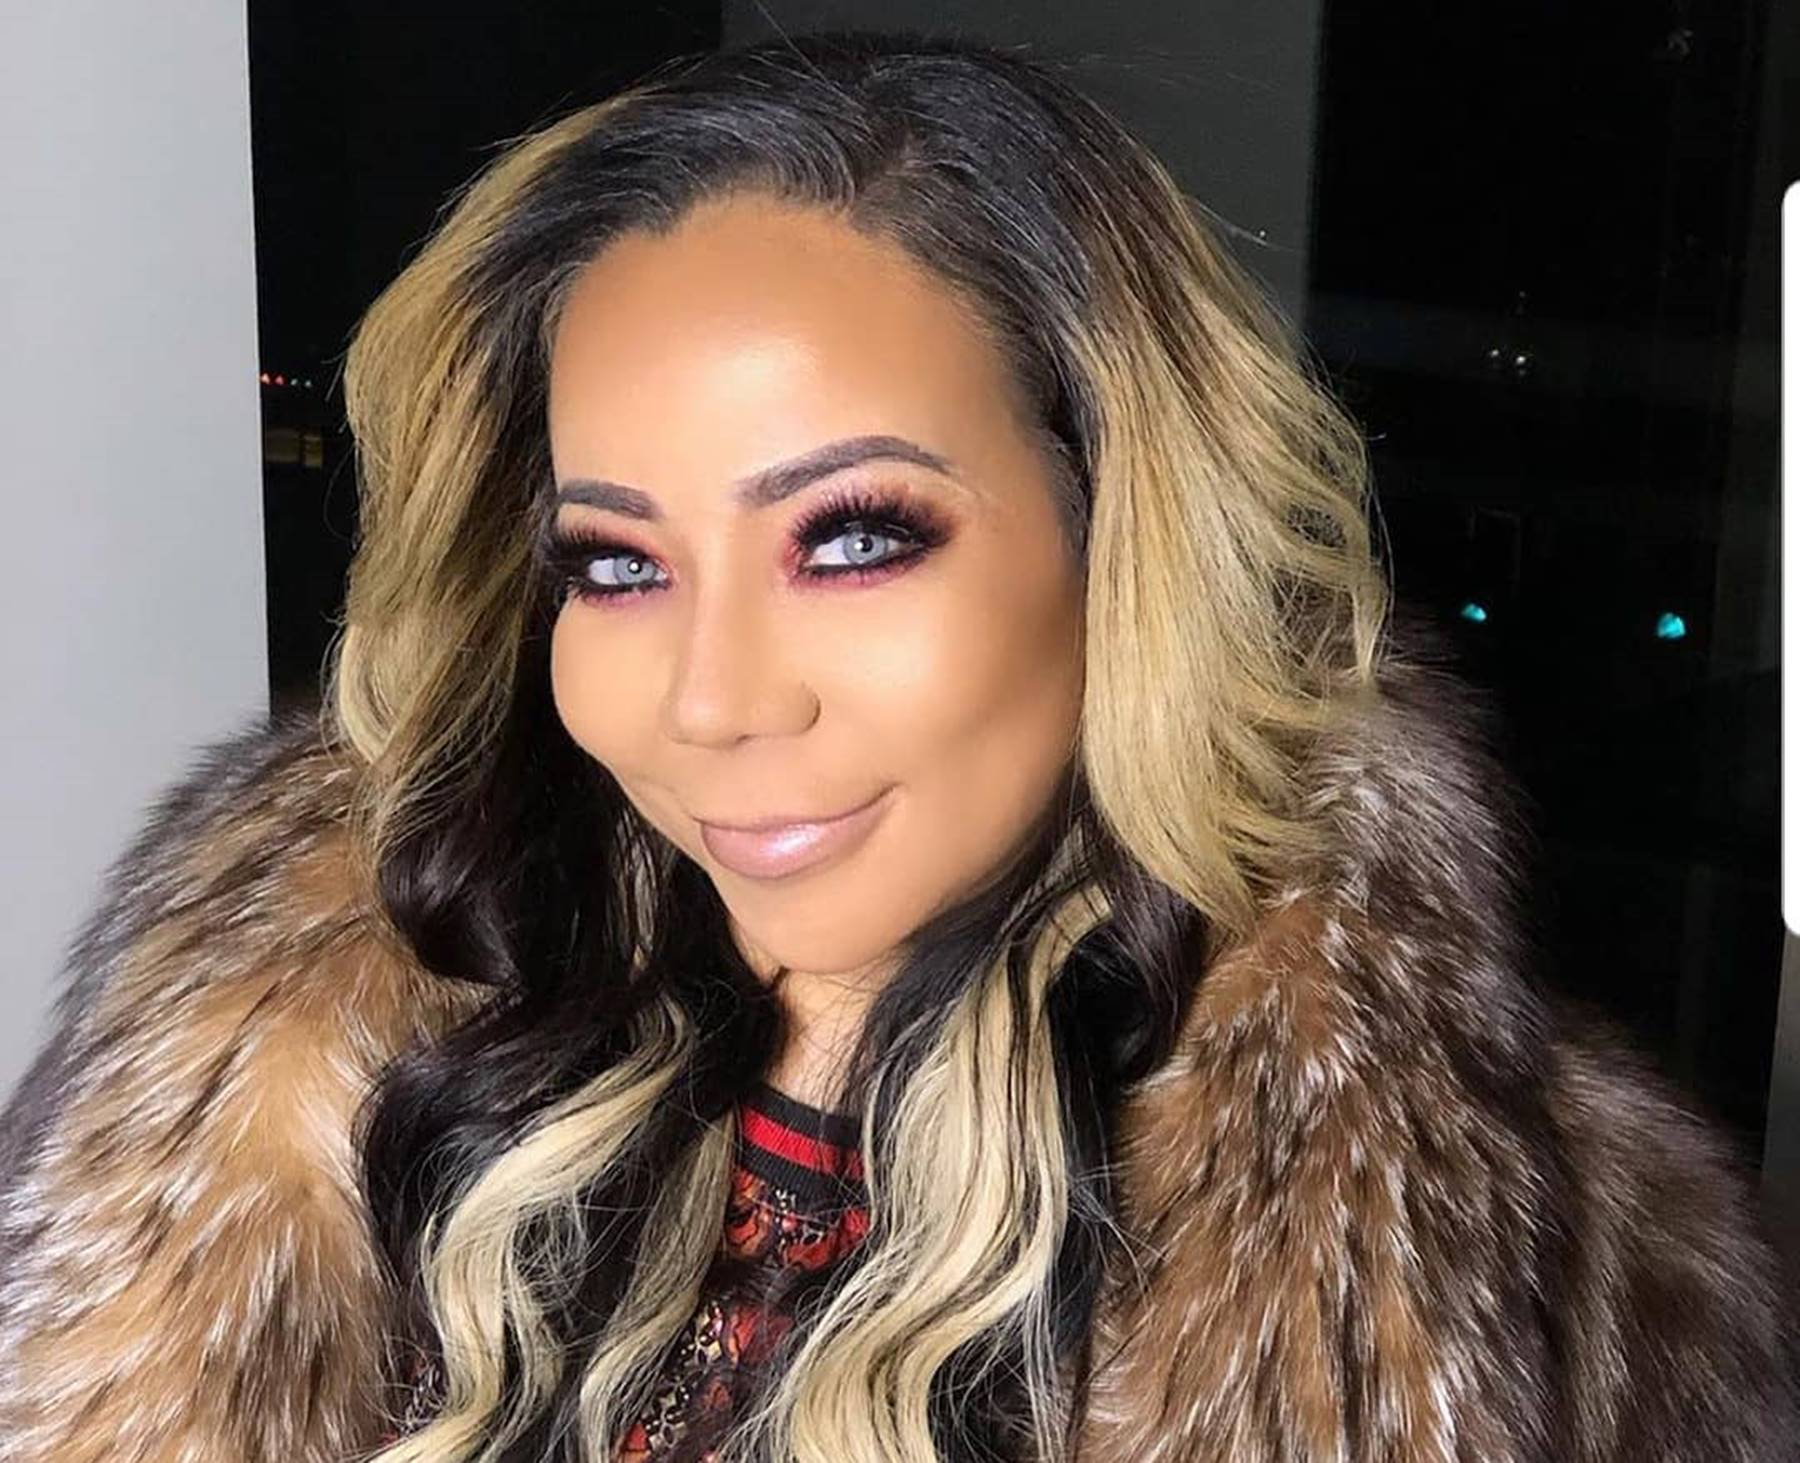 Tiny Harris Wishes A Happy Birthday To Her Niece With A Gorgeous Photo Since She Was Really Young And Fans Tell T.I.'s Wife That She Looked More Beautiful Before Cosmetic Interventions